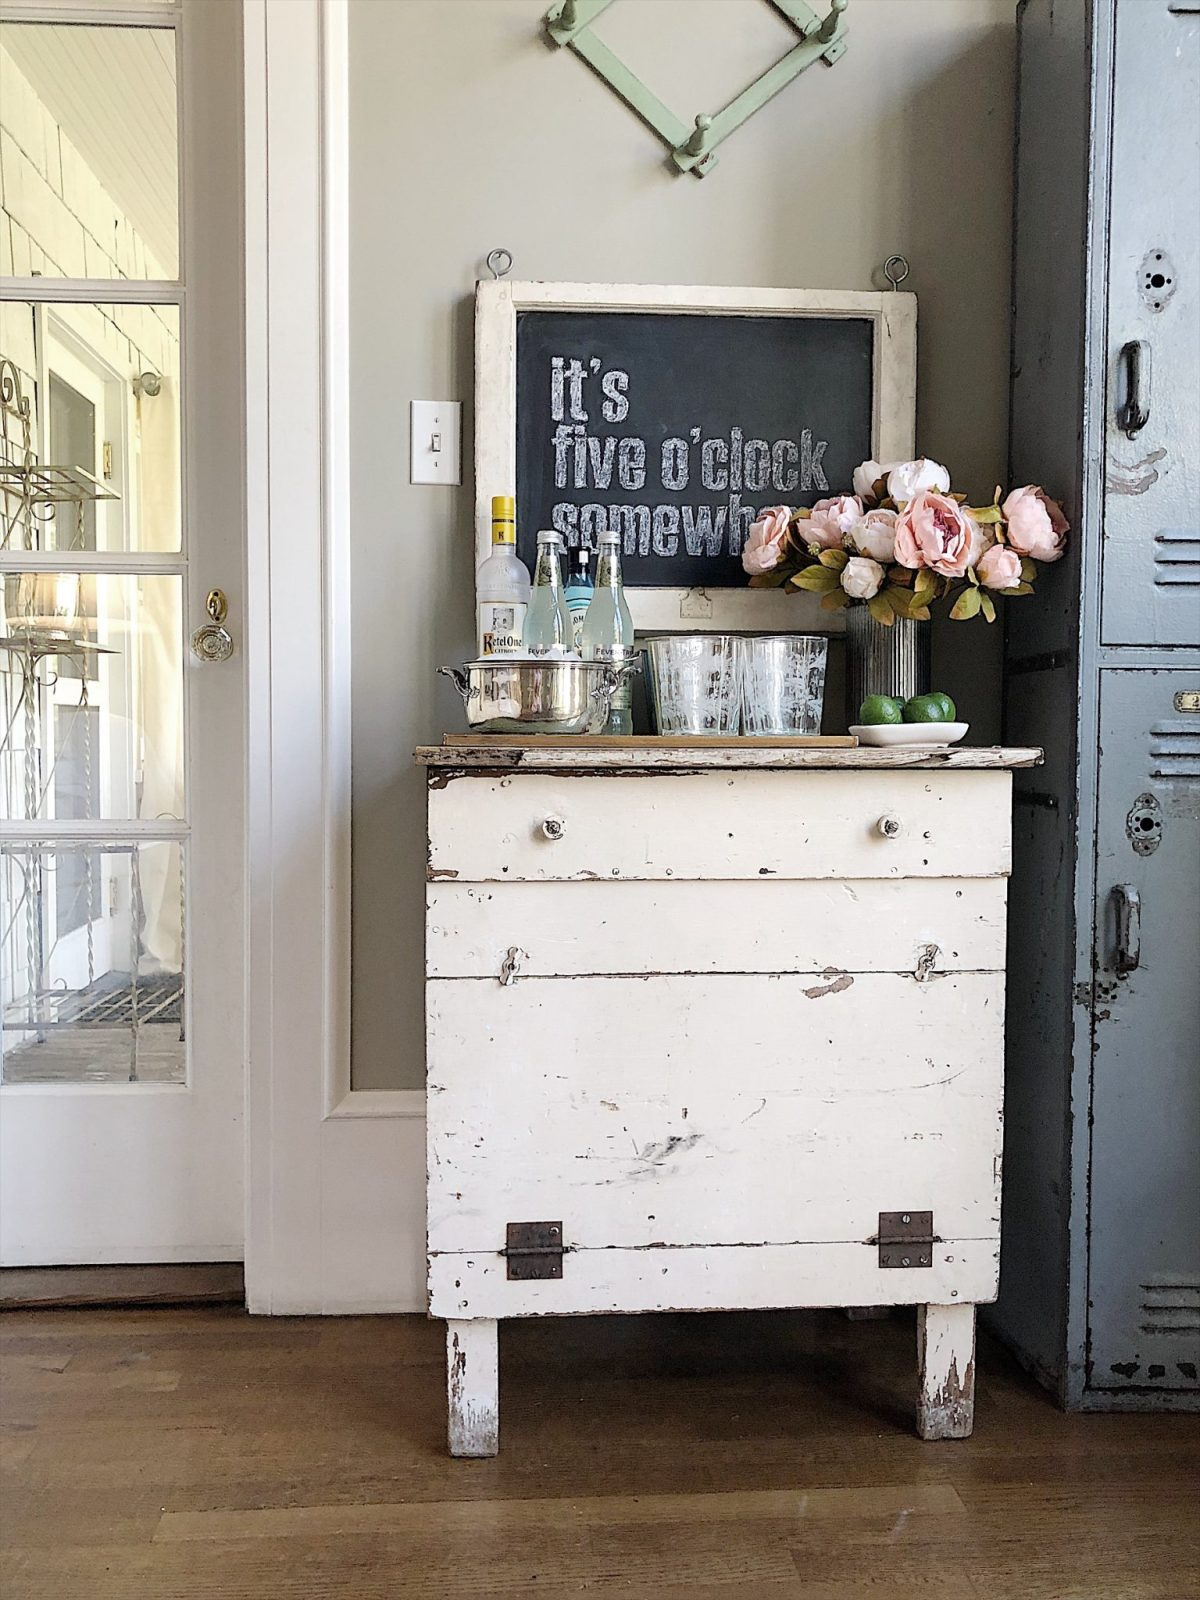 I Have Promised My Husband For Months That Would Set Up A Nice Bar Cart In Our Home When The Online Interior Design Site Havenly Shared Their Tips